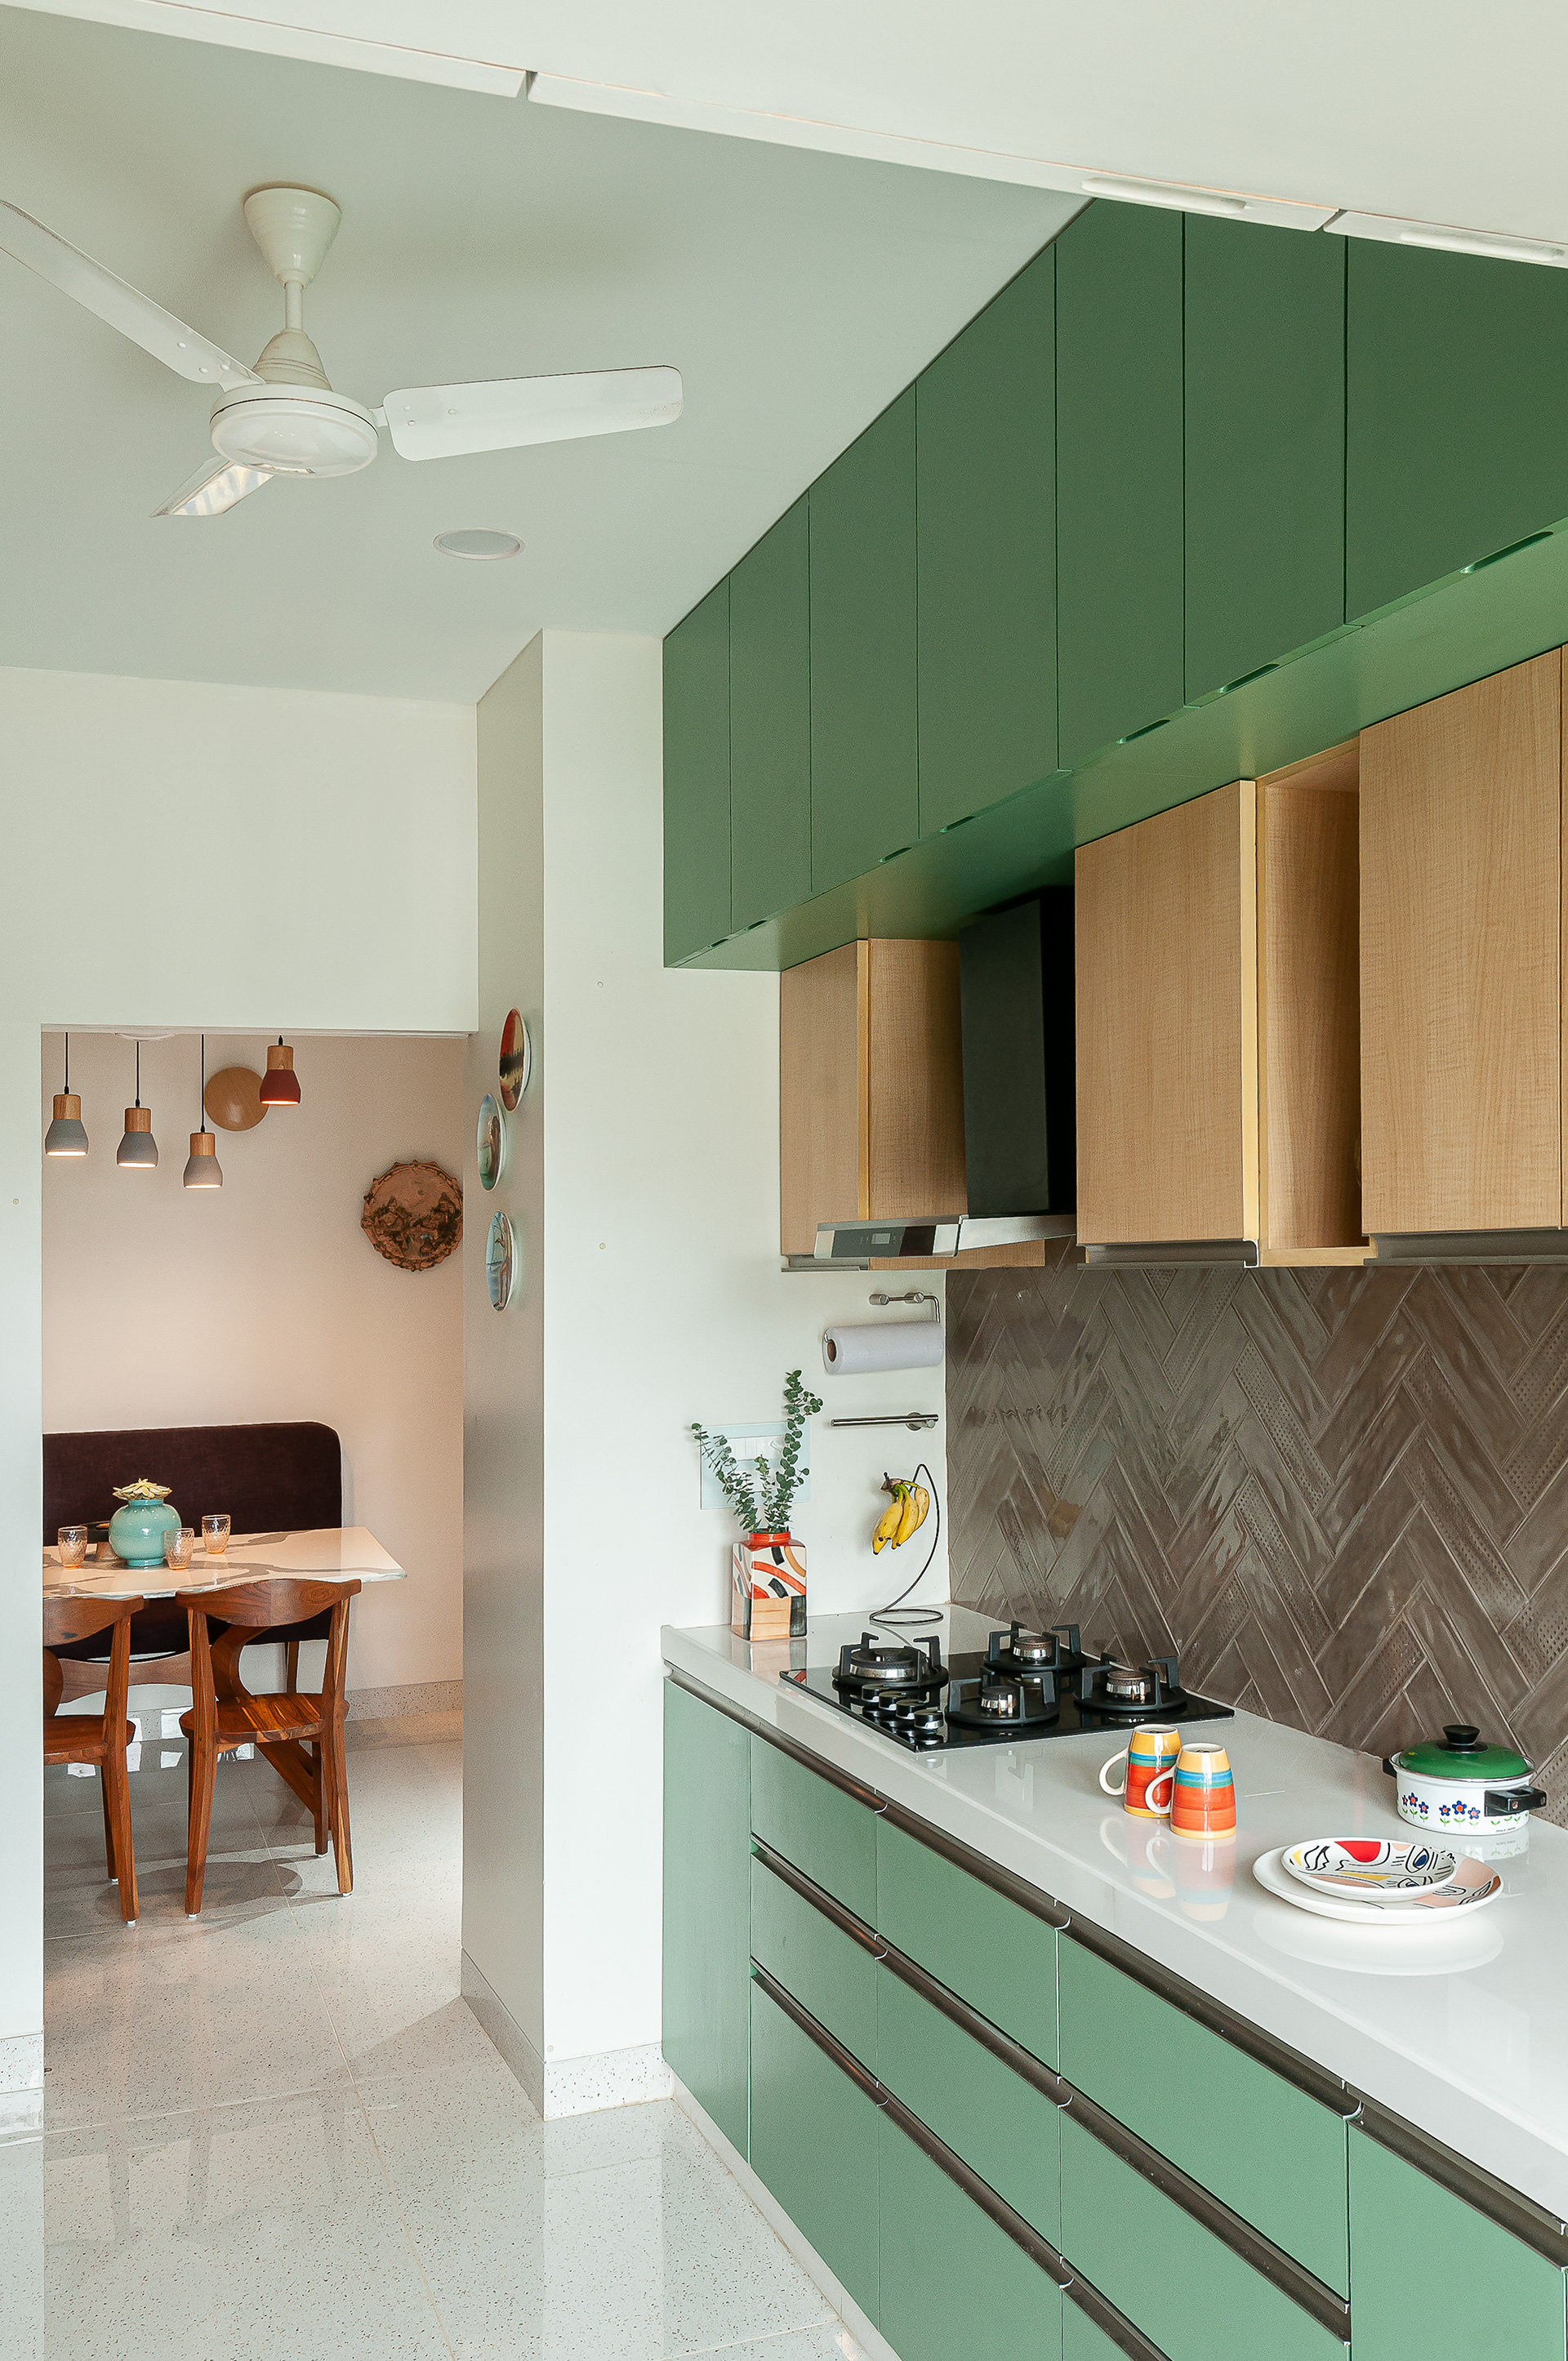 The 'green' open kitchen that allows eye contact with the dining space |Through the Keyhole Arches |MuseLAB| STIRworld